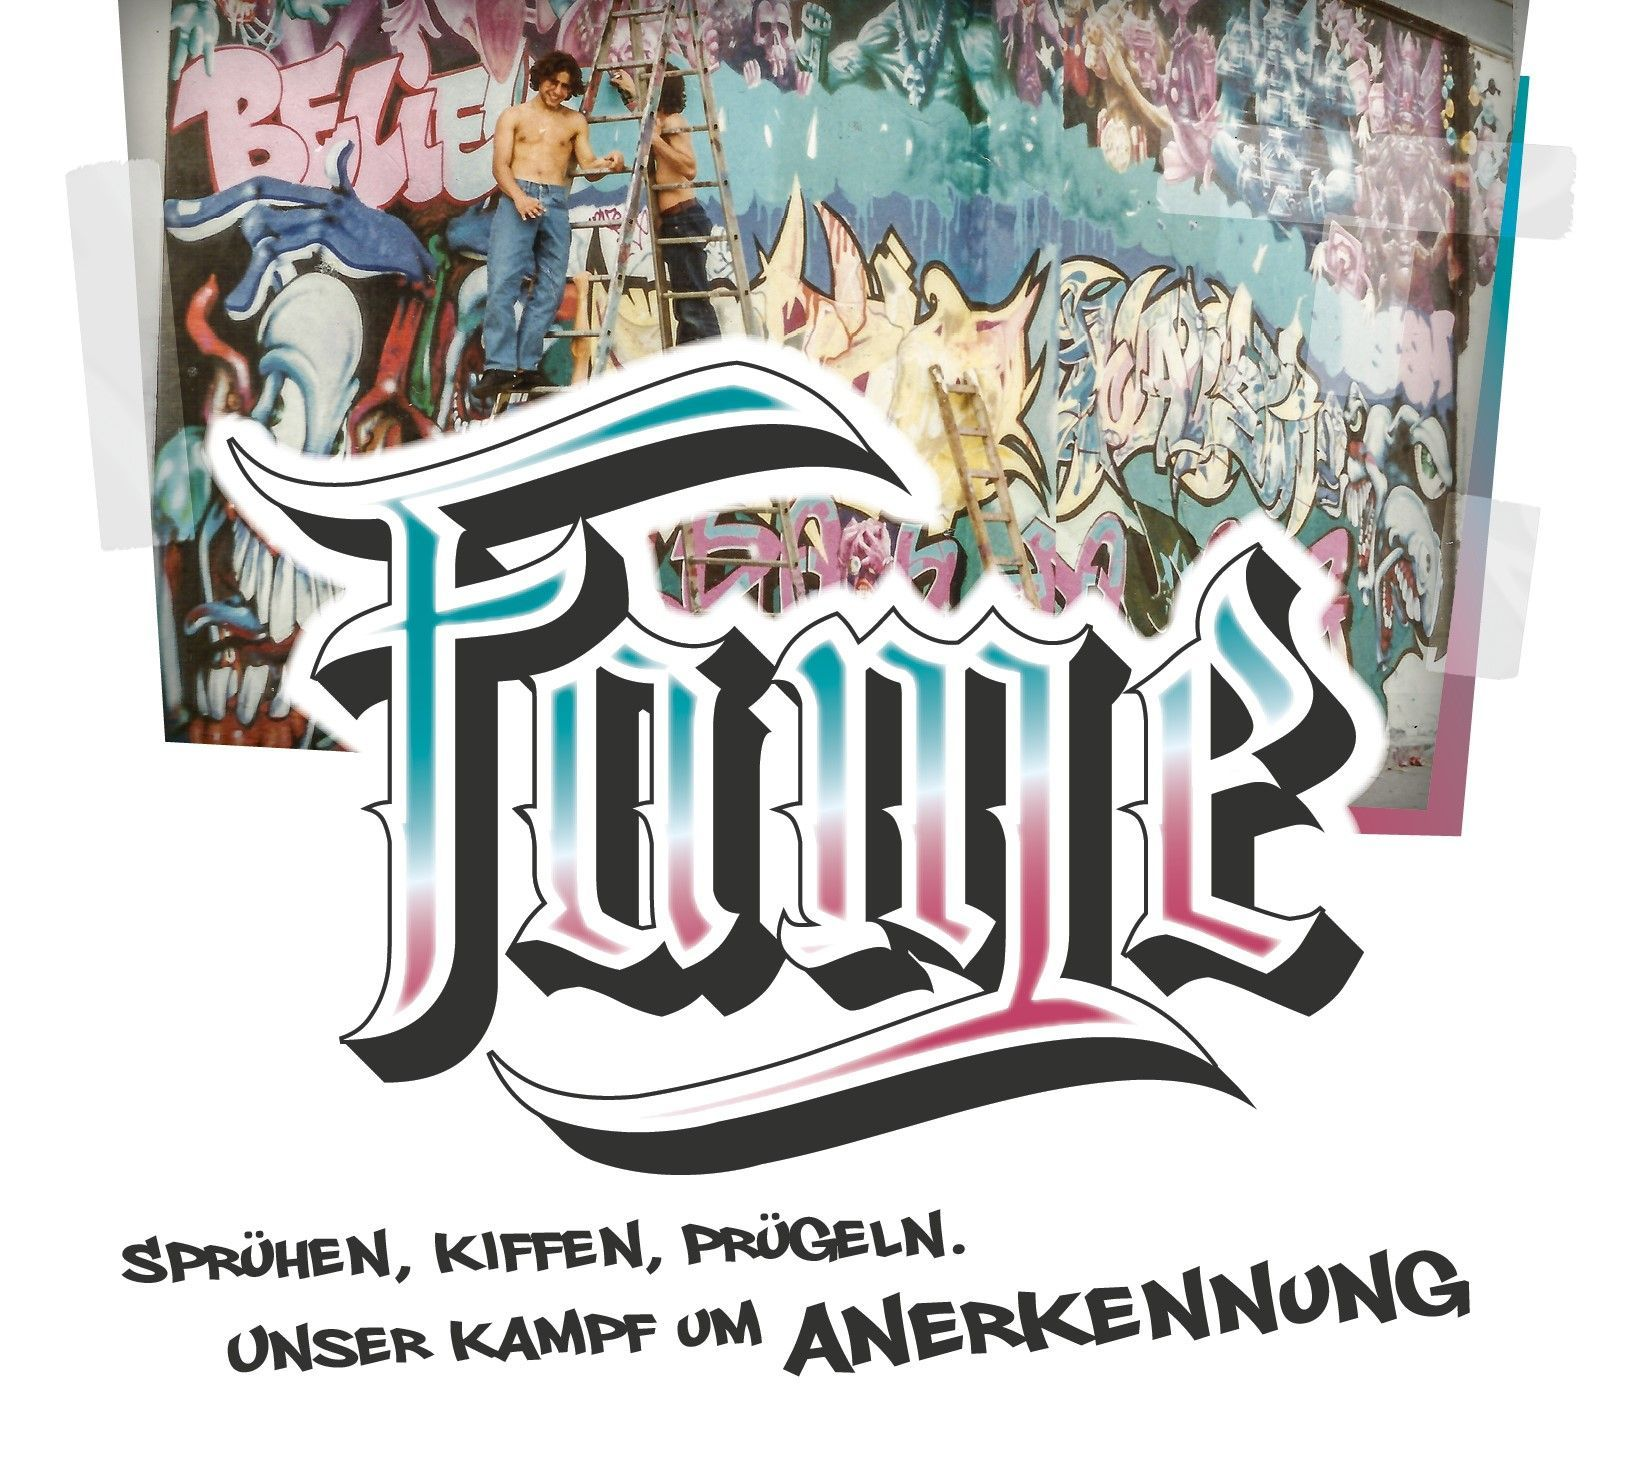 Fame - Hörbuch (MP3-CD)